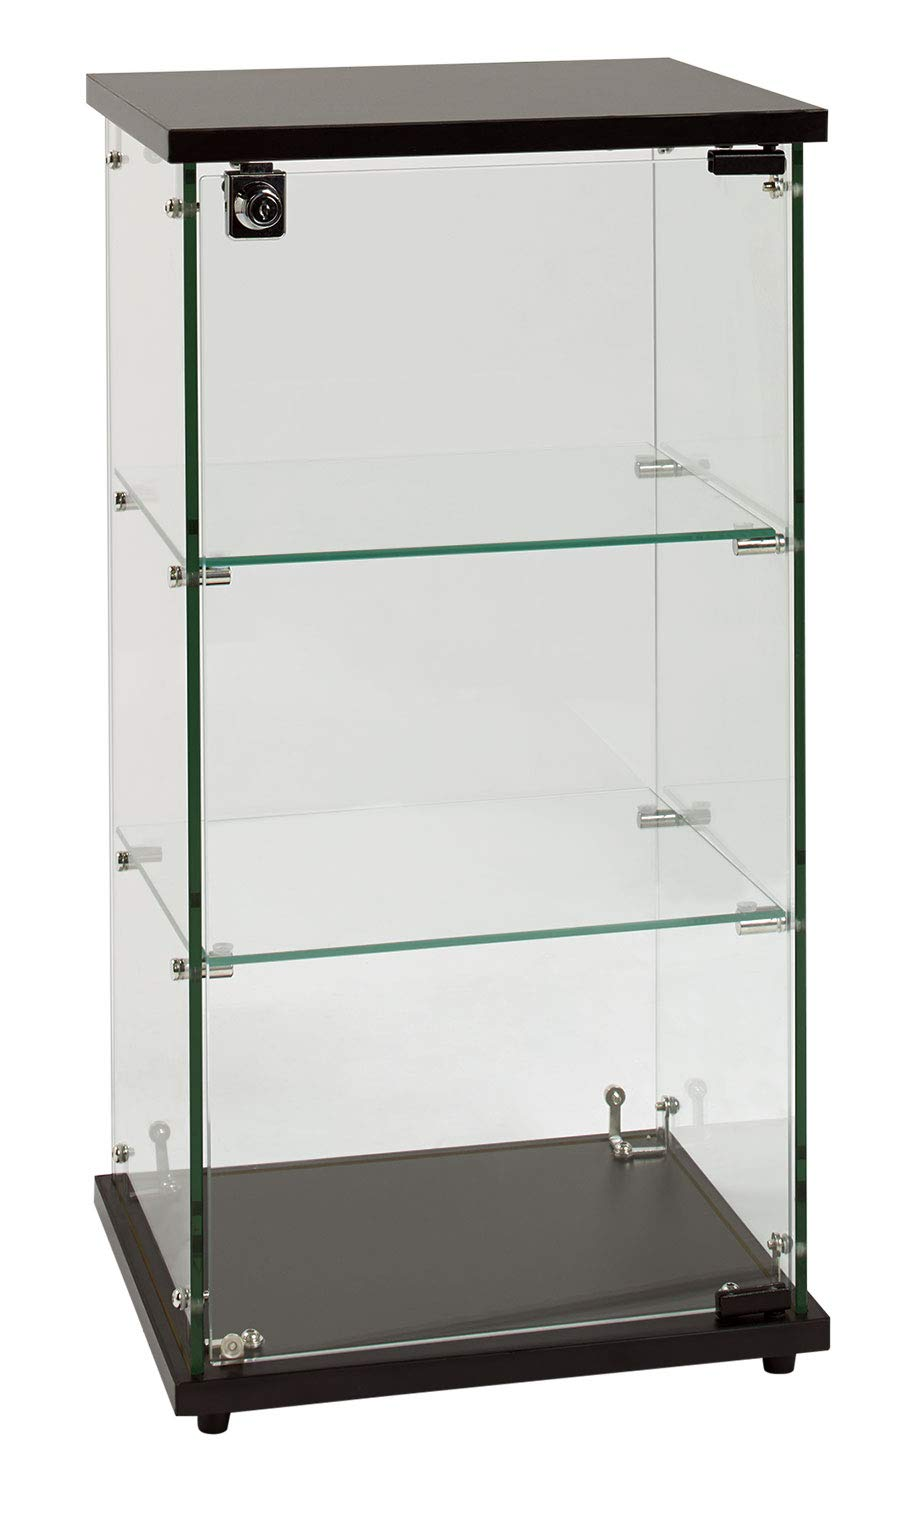 SSWBasics Infinity Countertop Display Case (Ready to Assemble) - 12-1/4''W x 14-1/4''D x 27-1/4''H